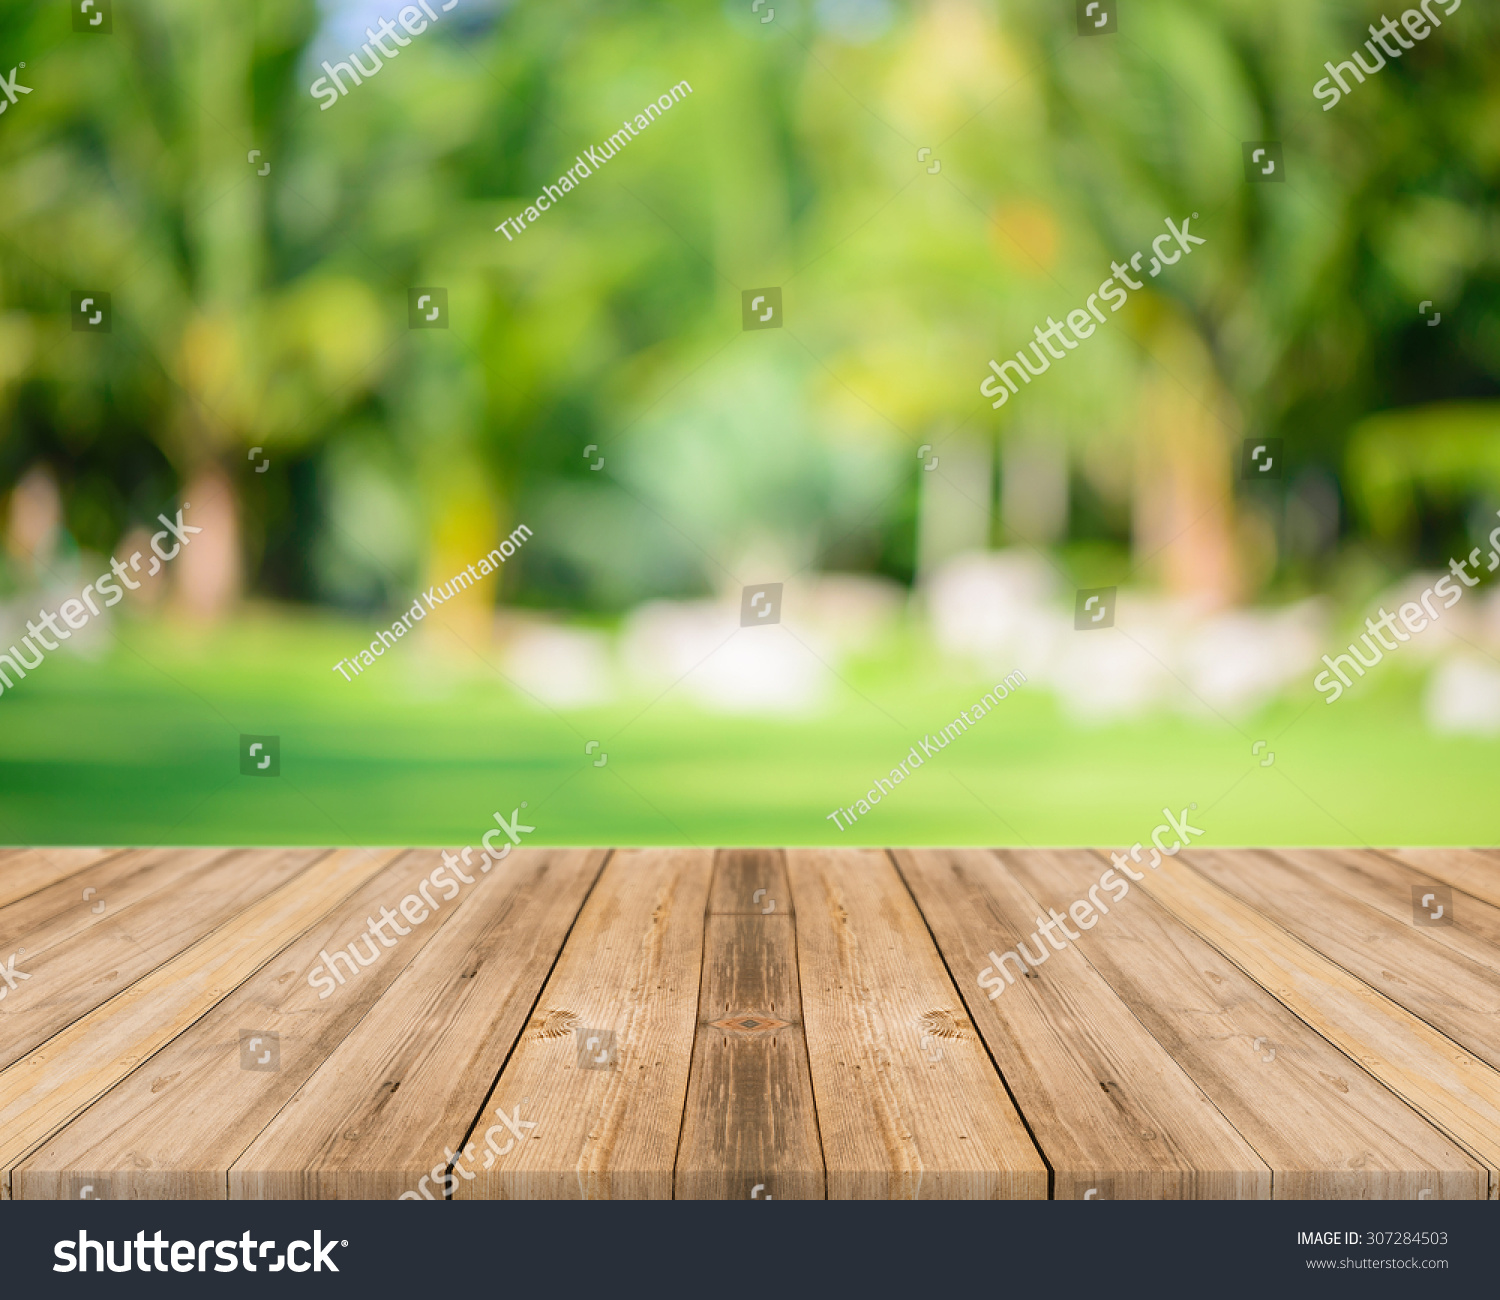 Royalty-free Wooden Board Empty Table In Front Of